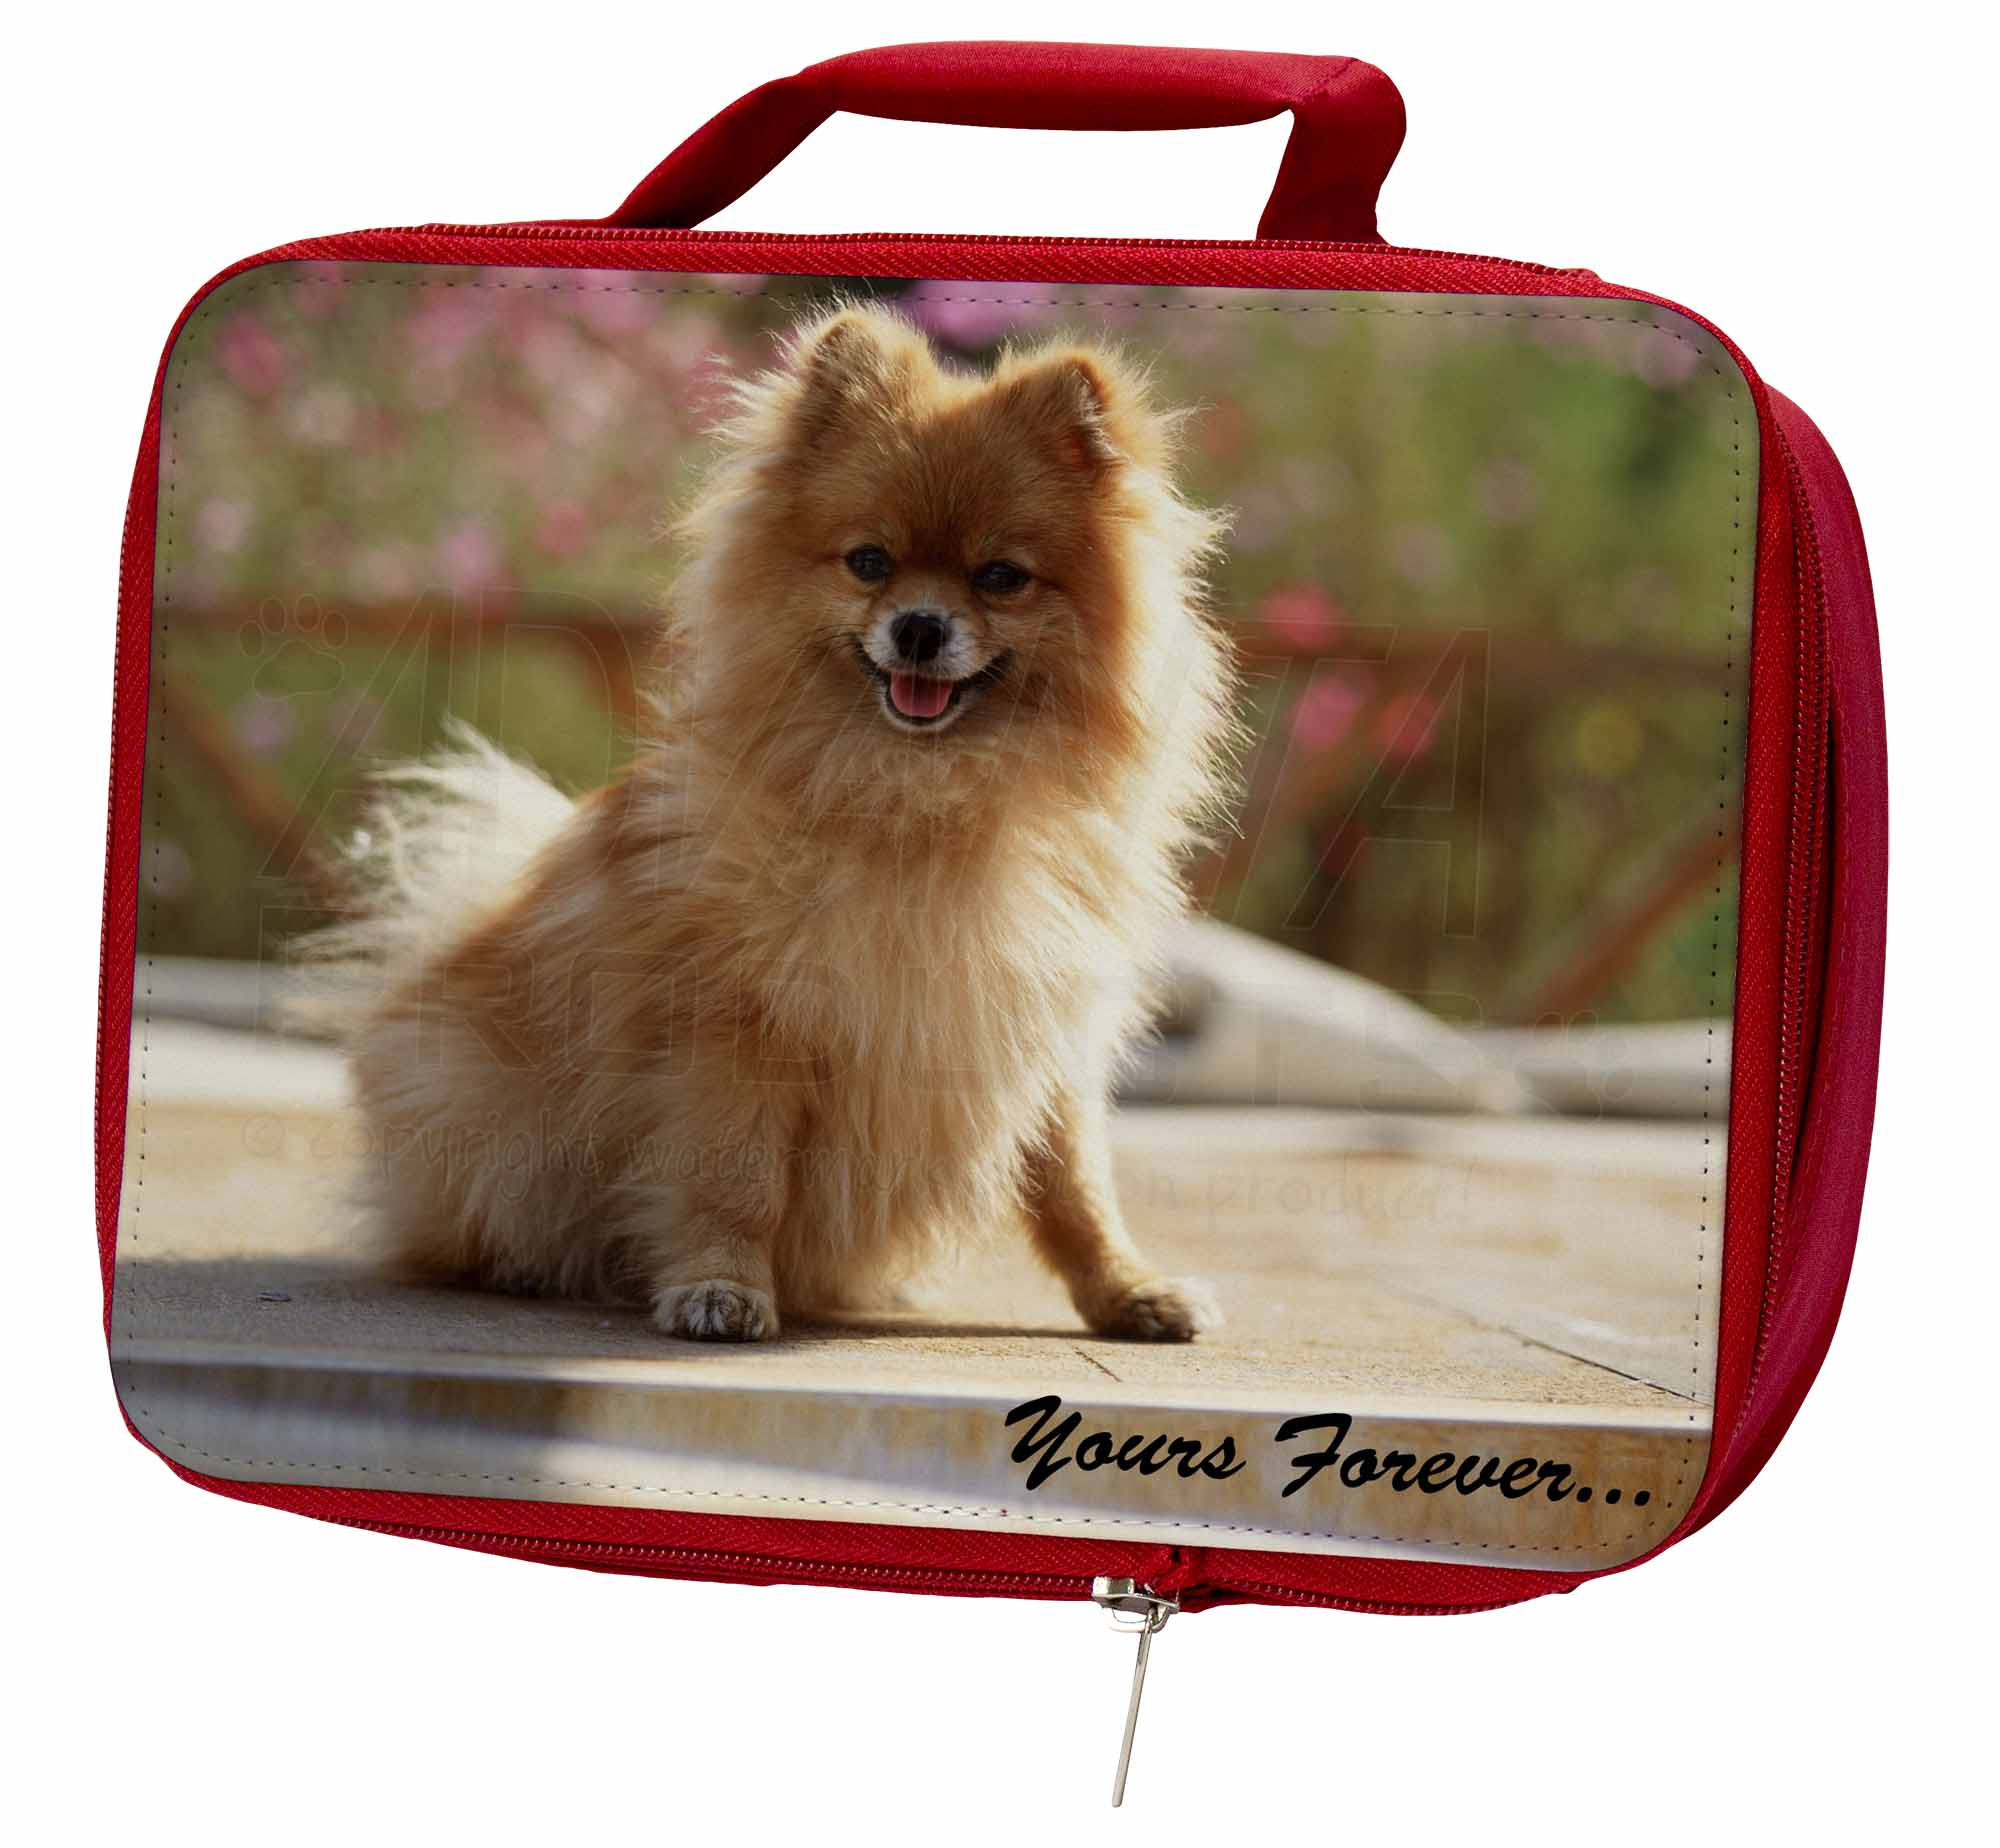 Pomeranian Dog AD-PO89yLBR 'Yours Forever' Insulated Red School Lunch Box/Picni, AD-PO89yLBR Dog 9ab8af